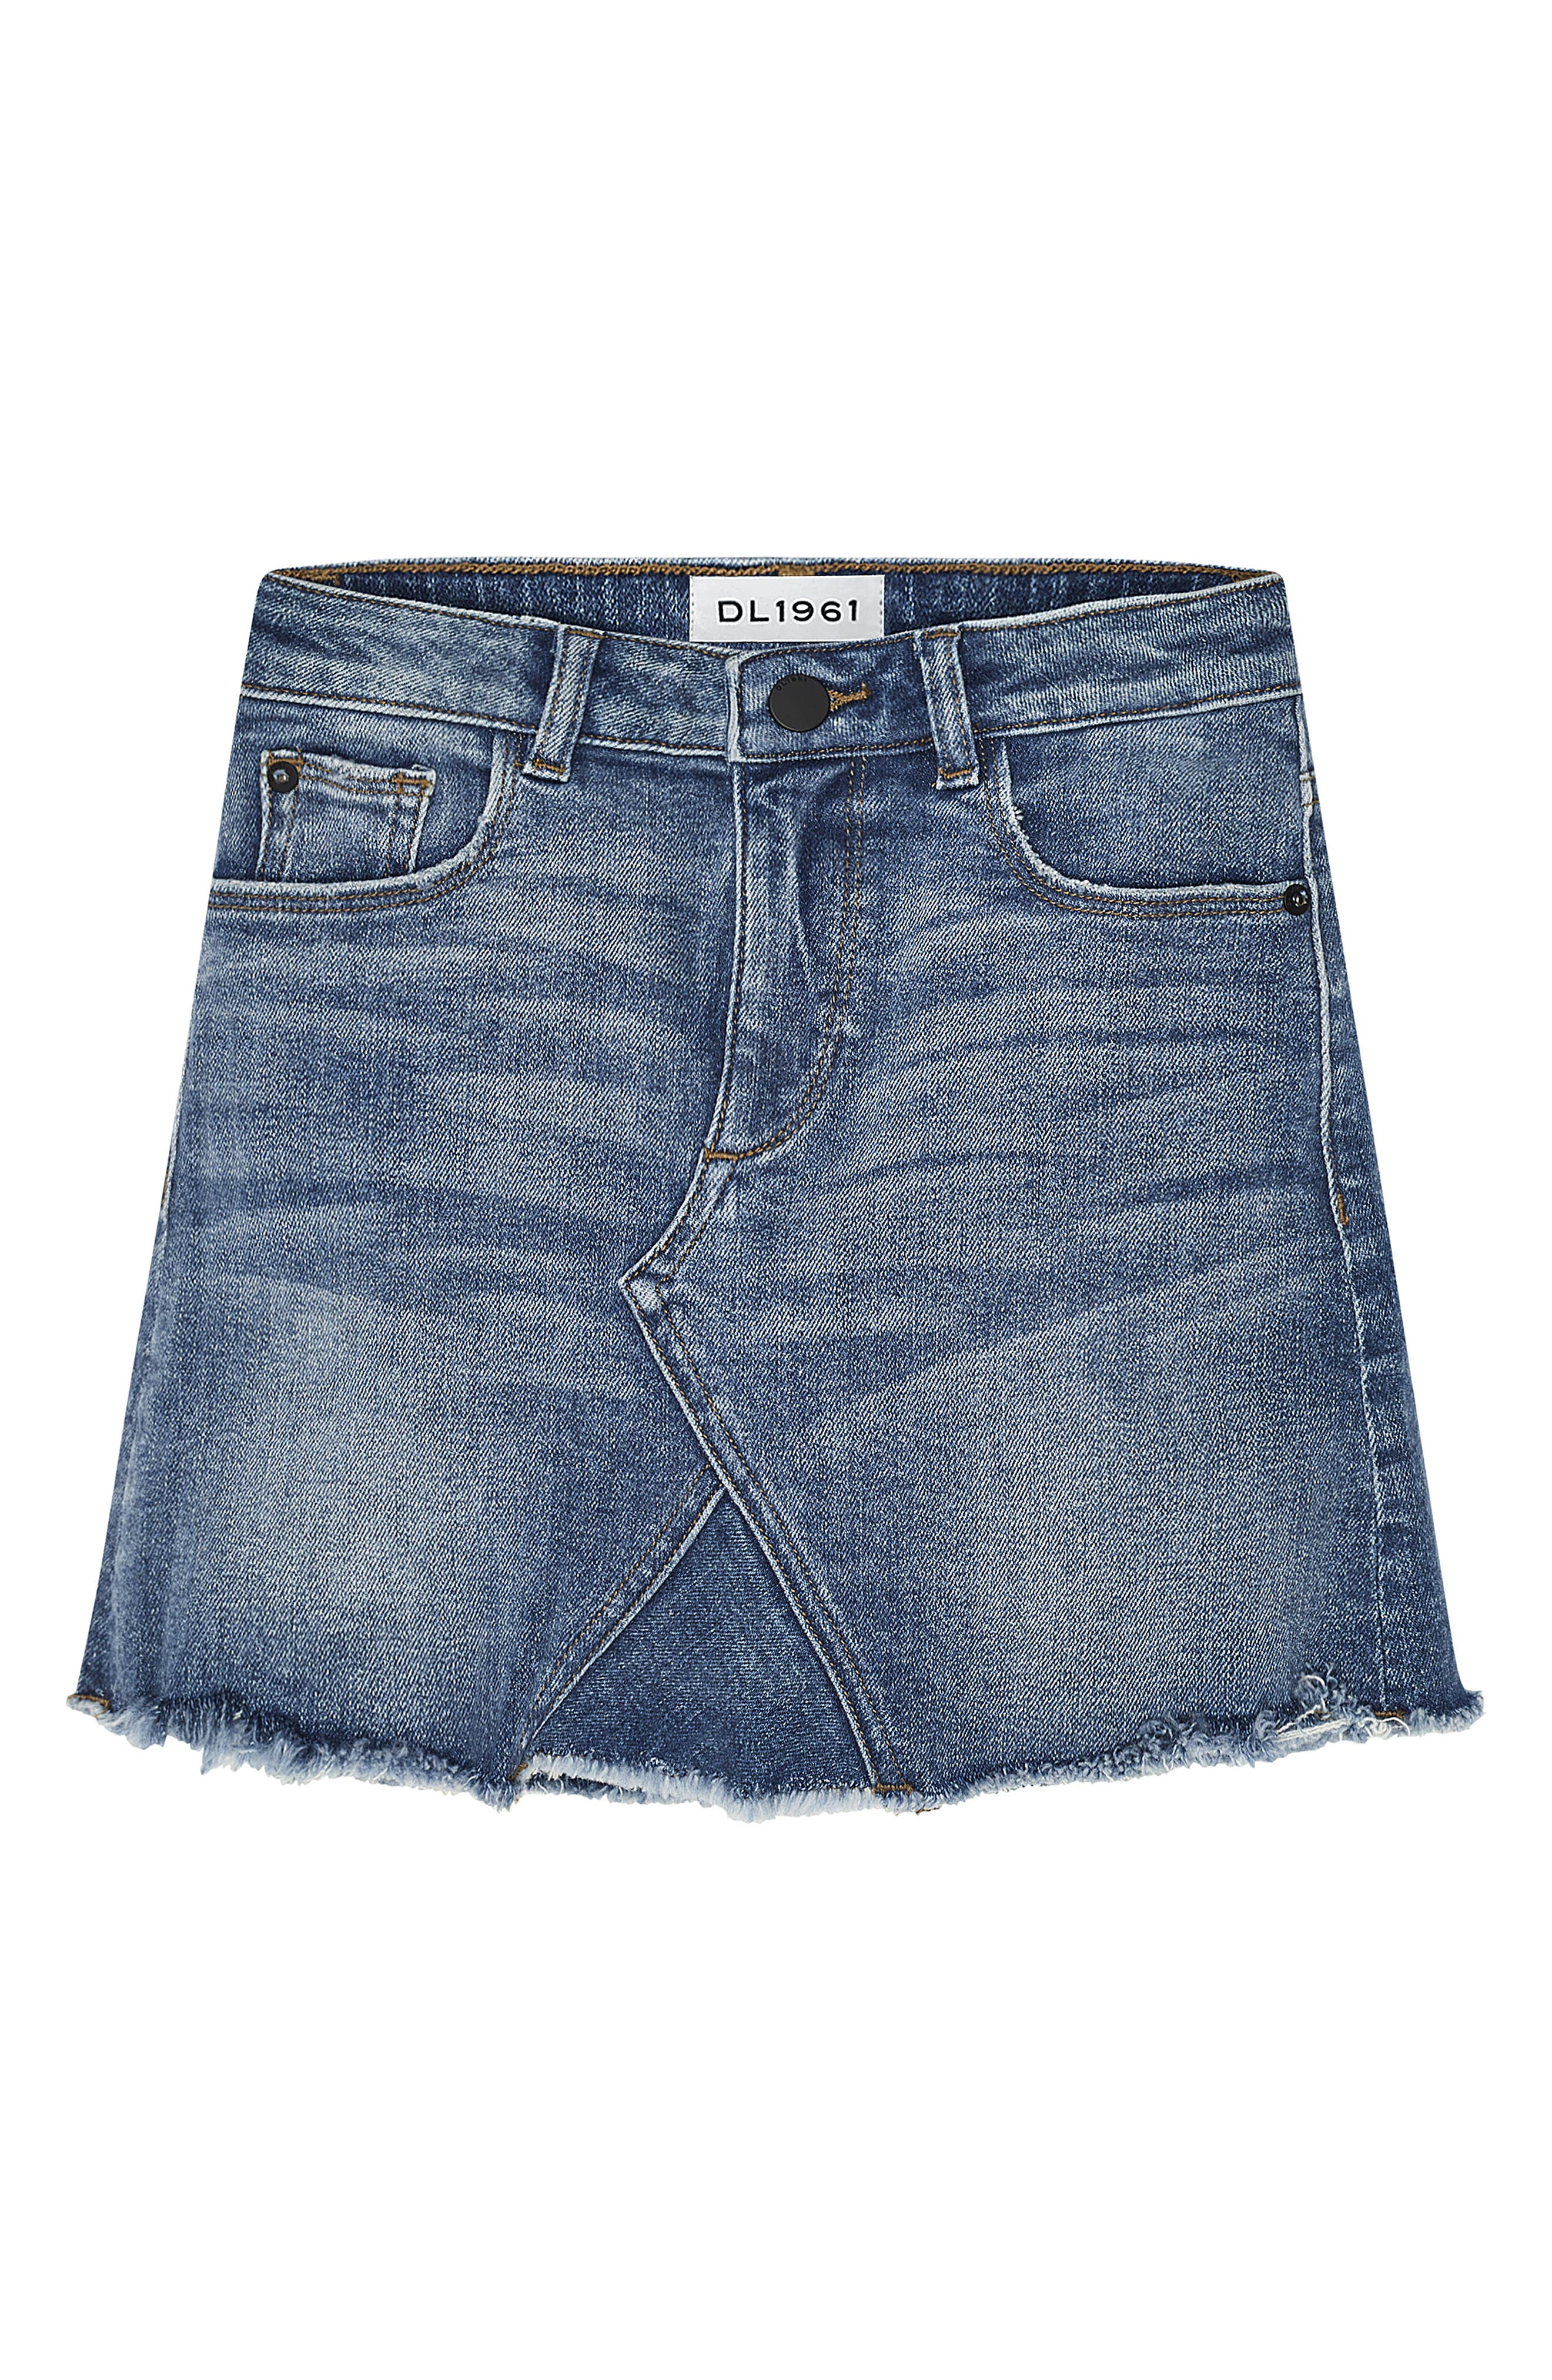 Denim Miniskirt,                             Main thumbnail 1, color,                             BLUE ROSE